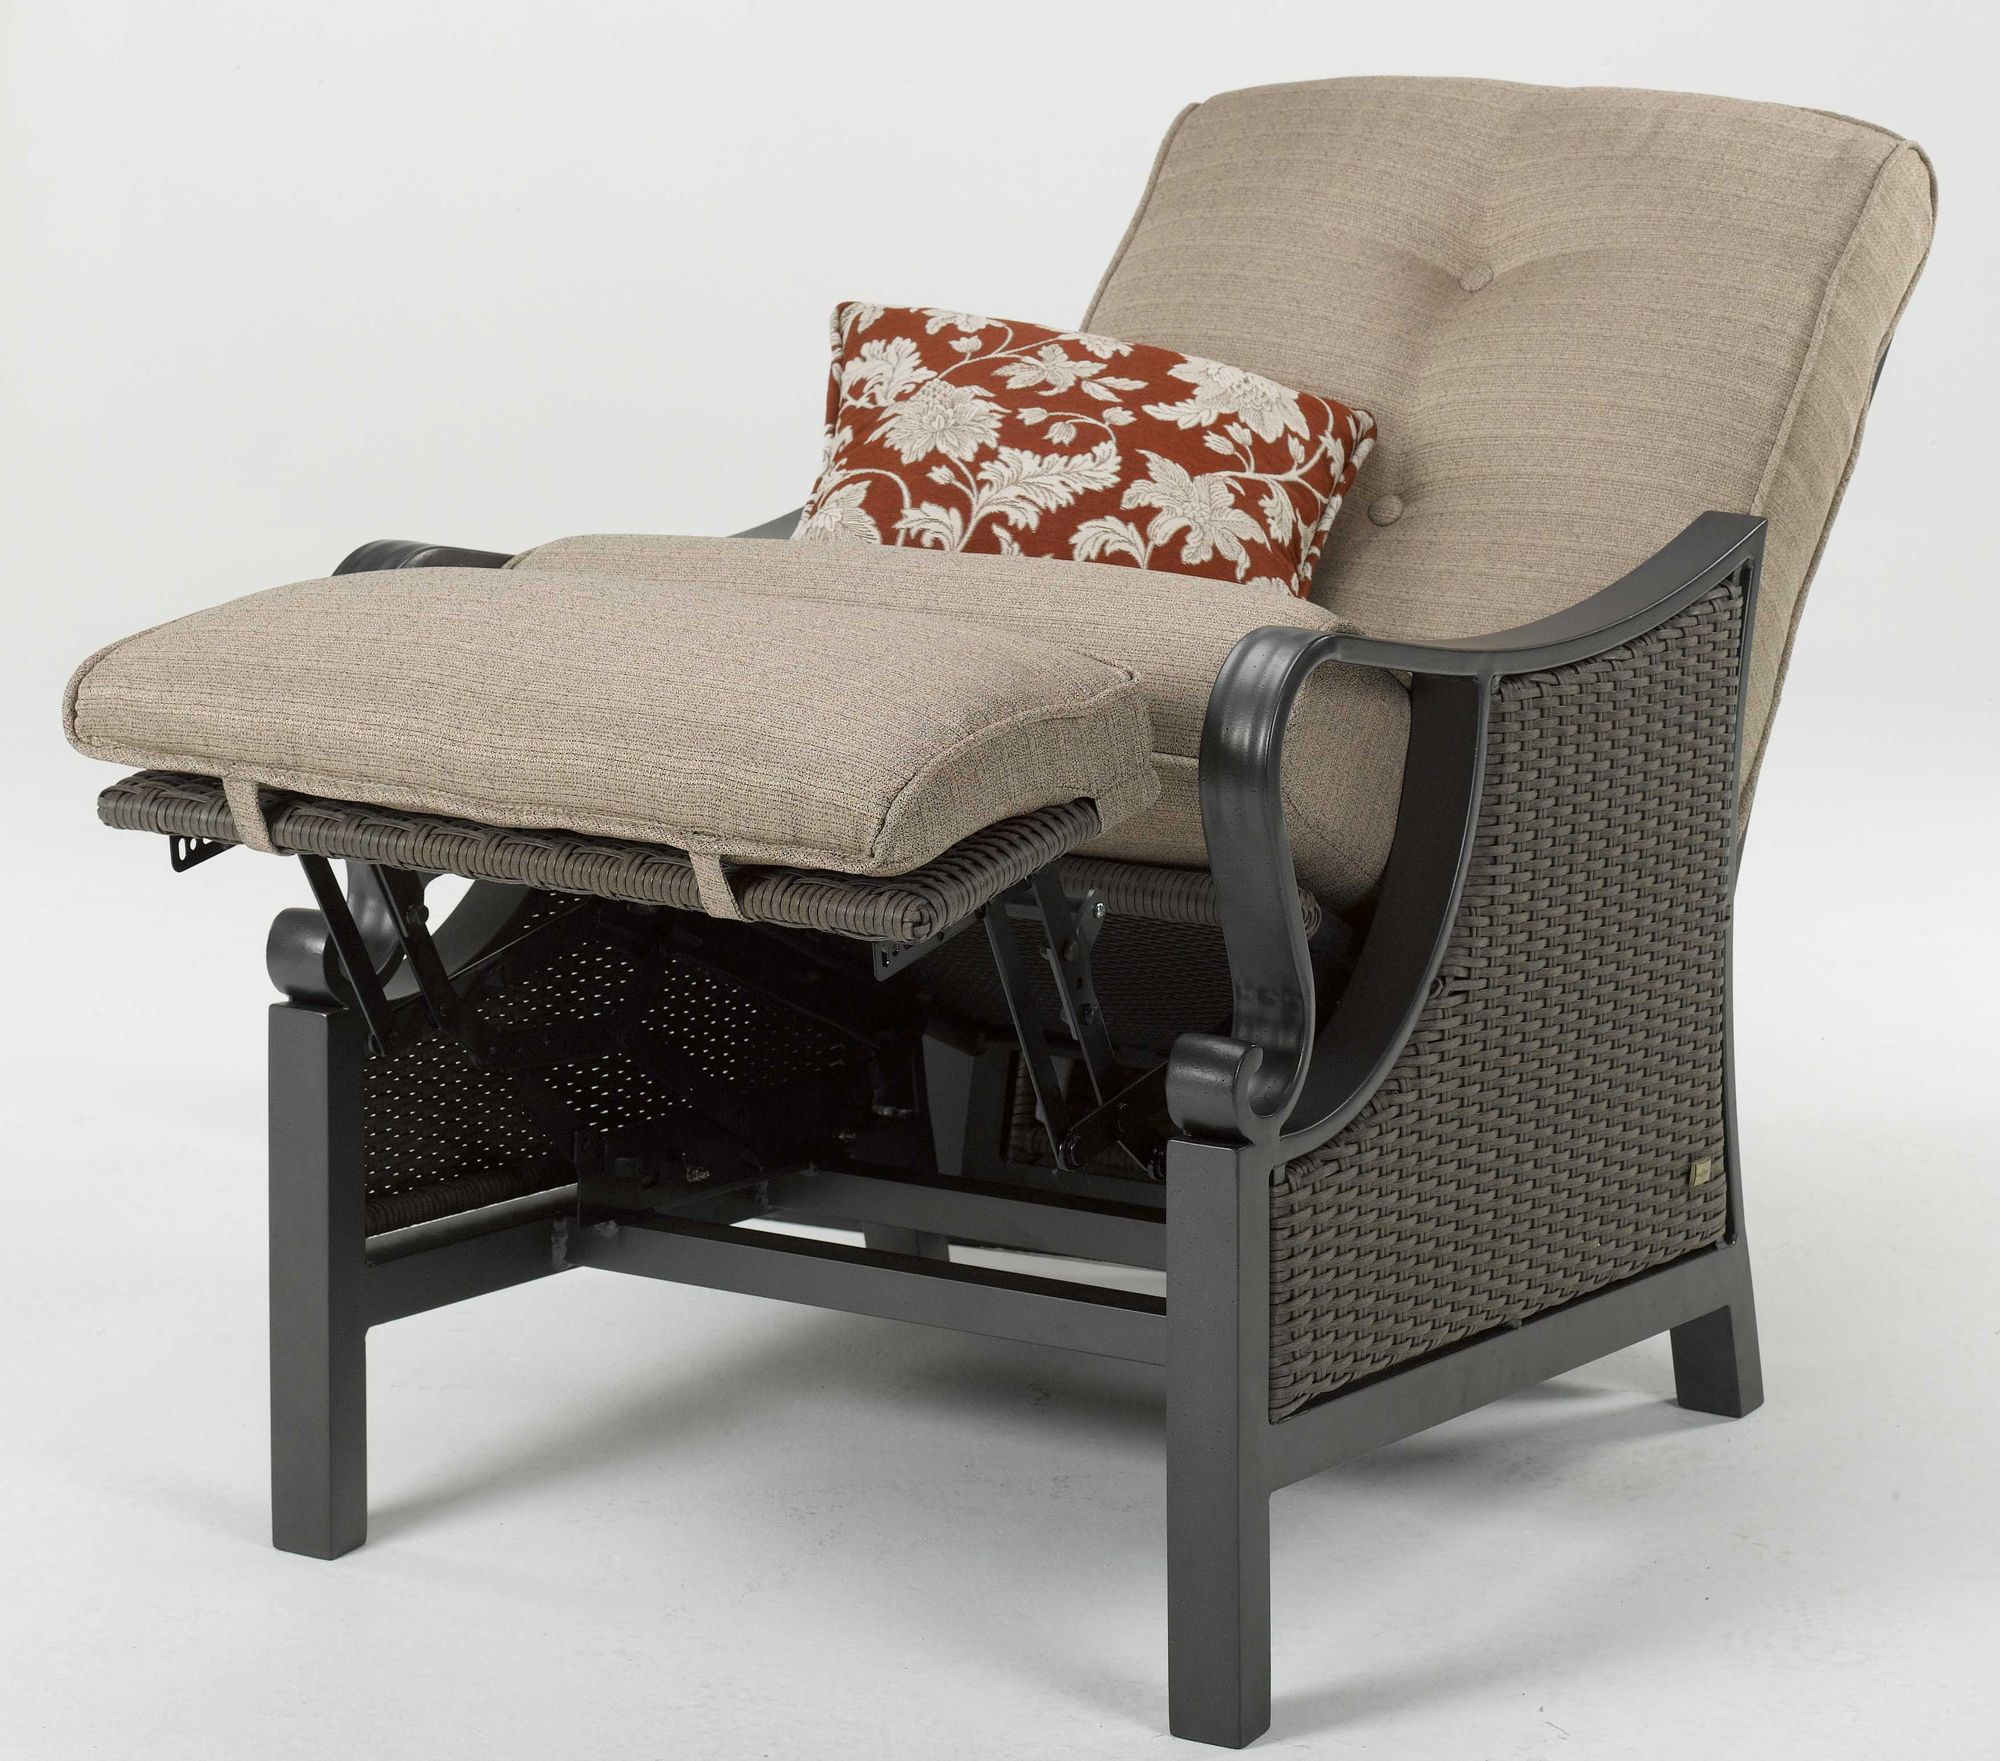 La-Z-Boy Outdoor Preston Outdoor Recliner